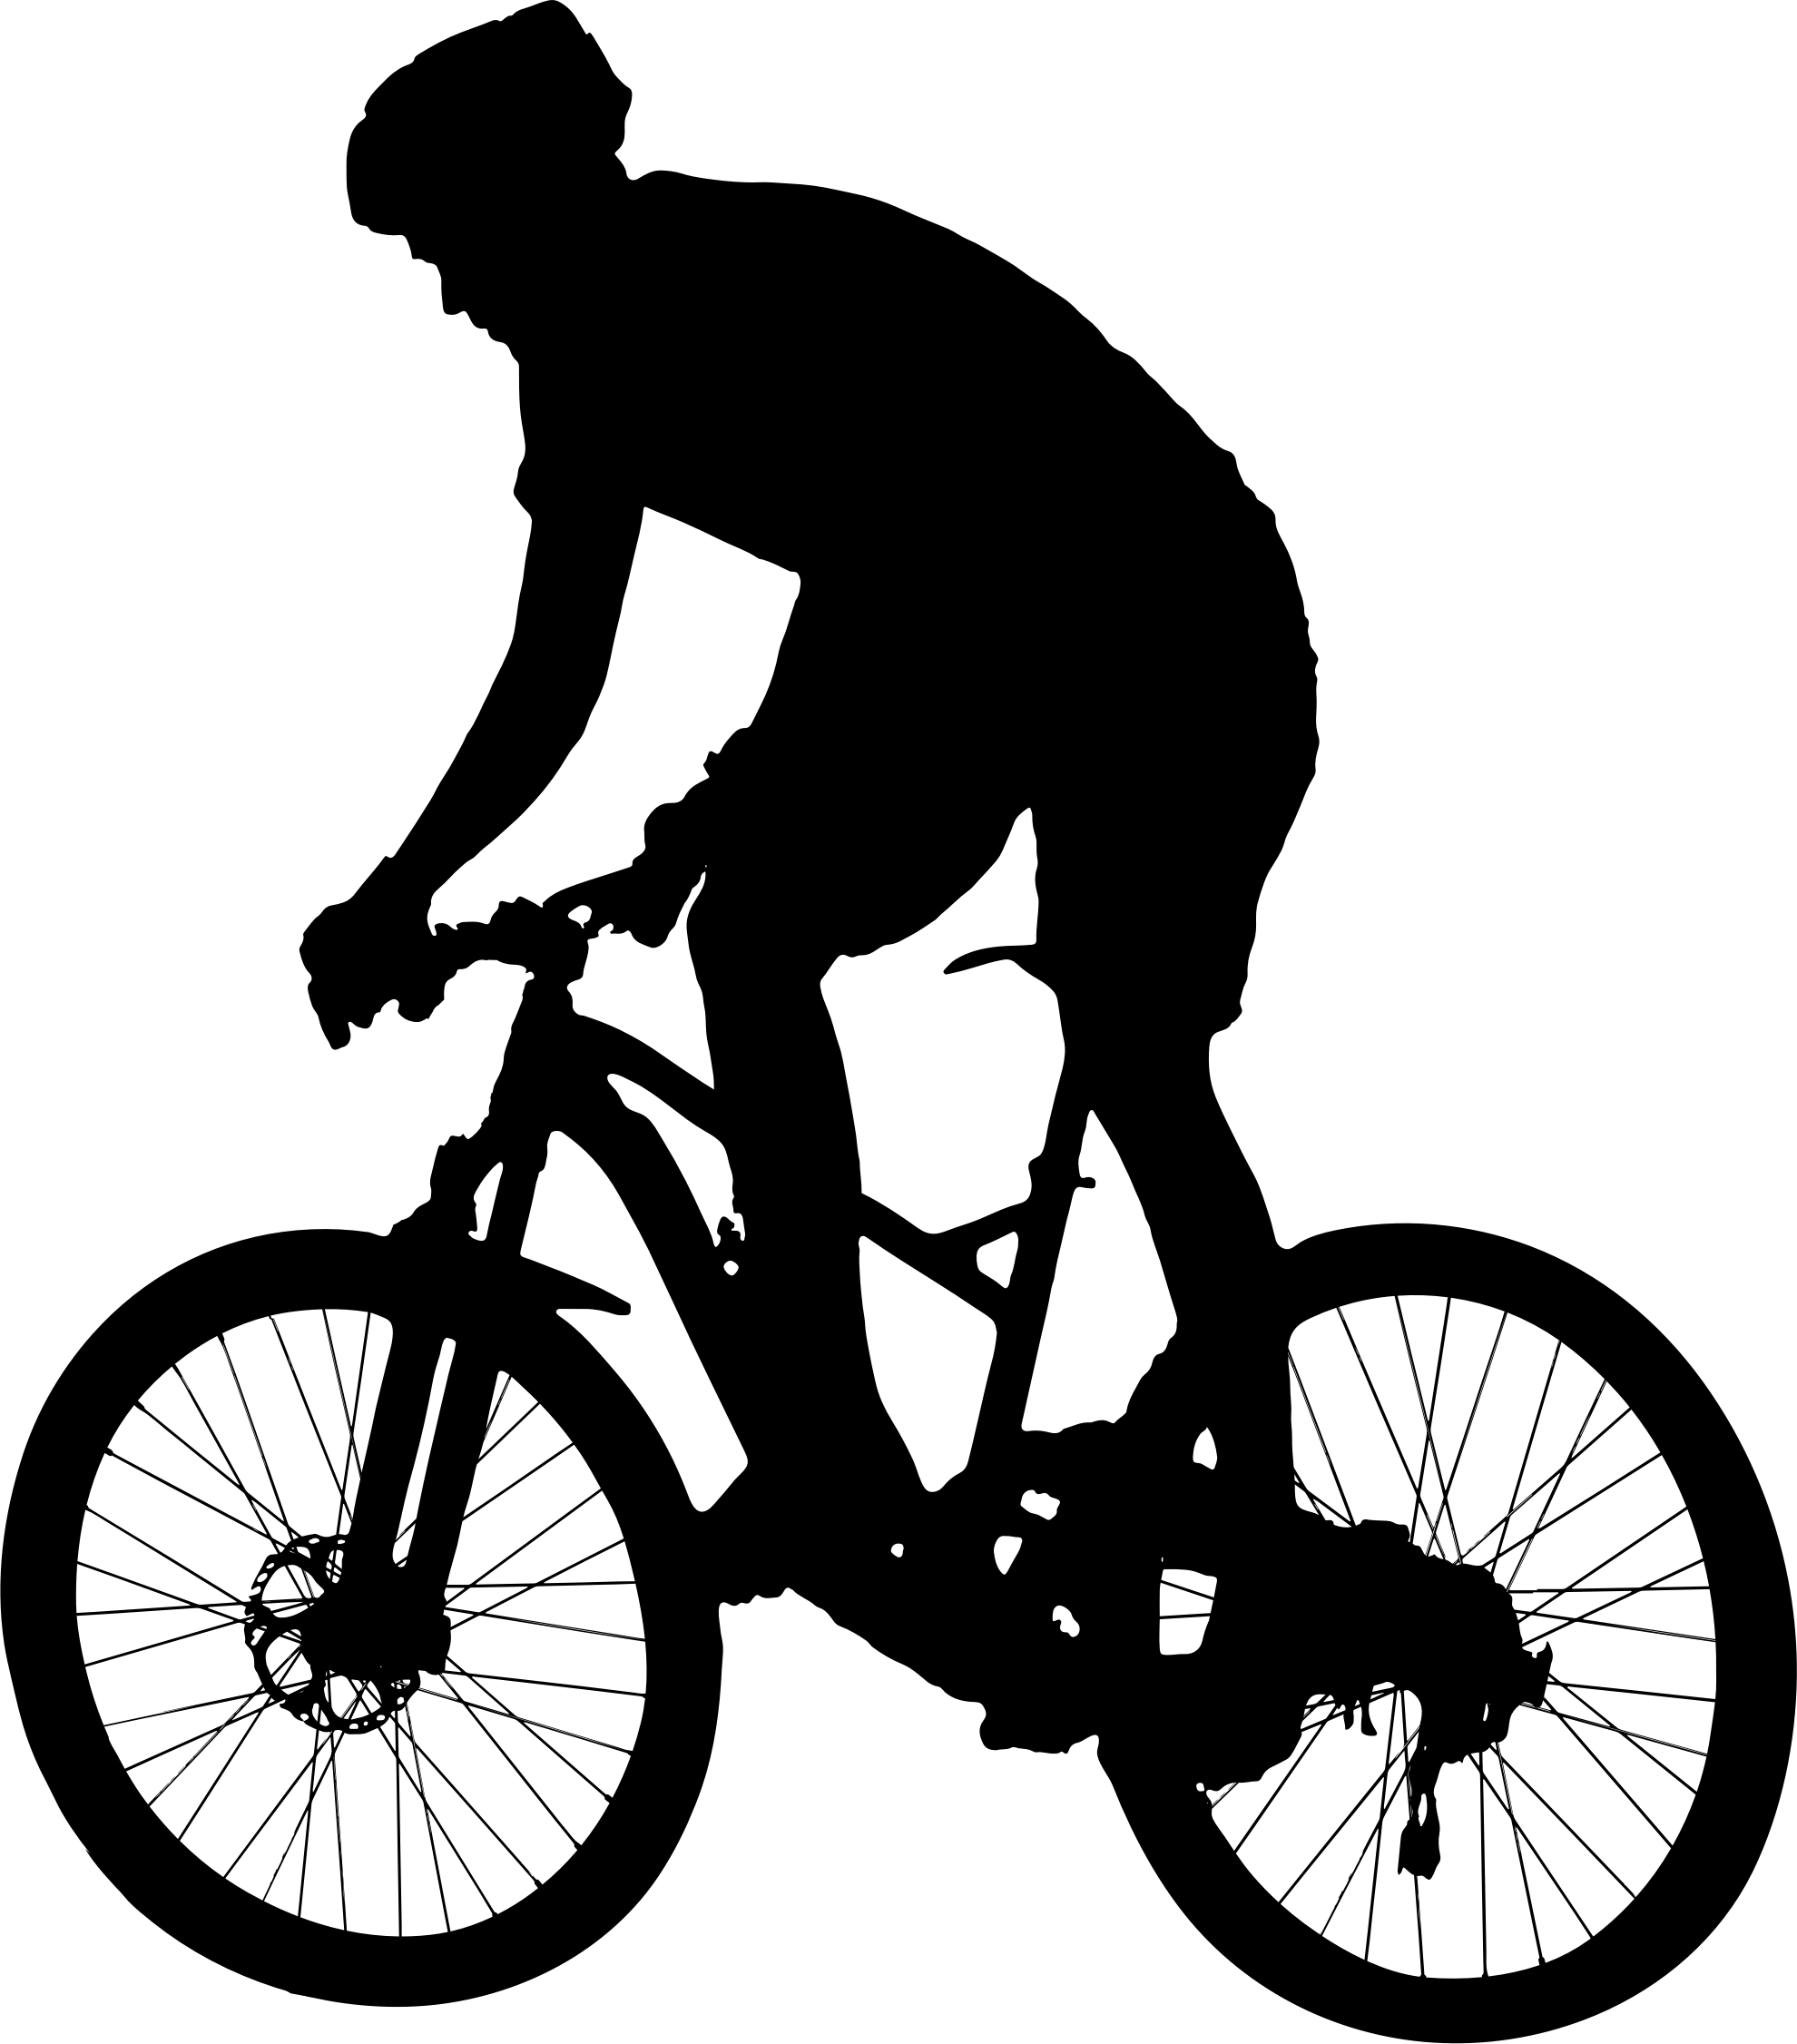 Racing Bicycle Clipart Bicycle Racing Clip Art Cliparts